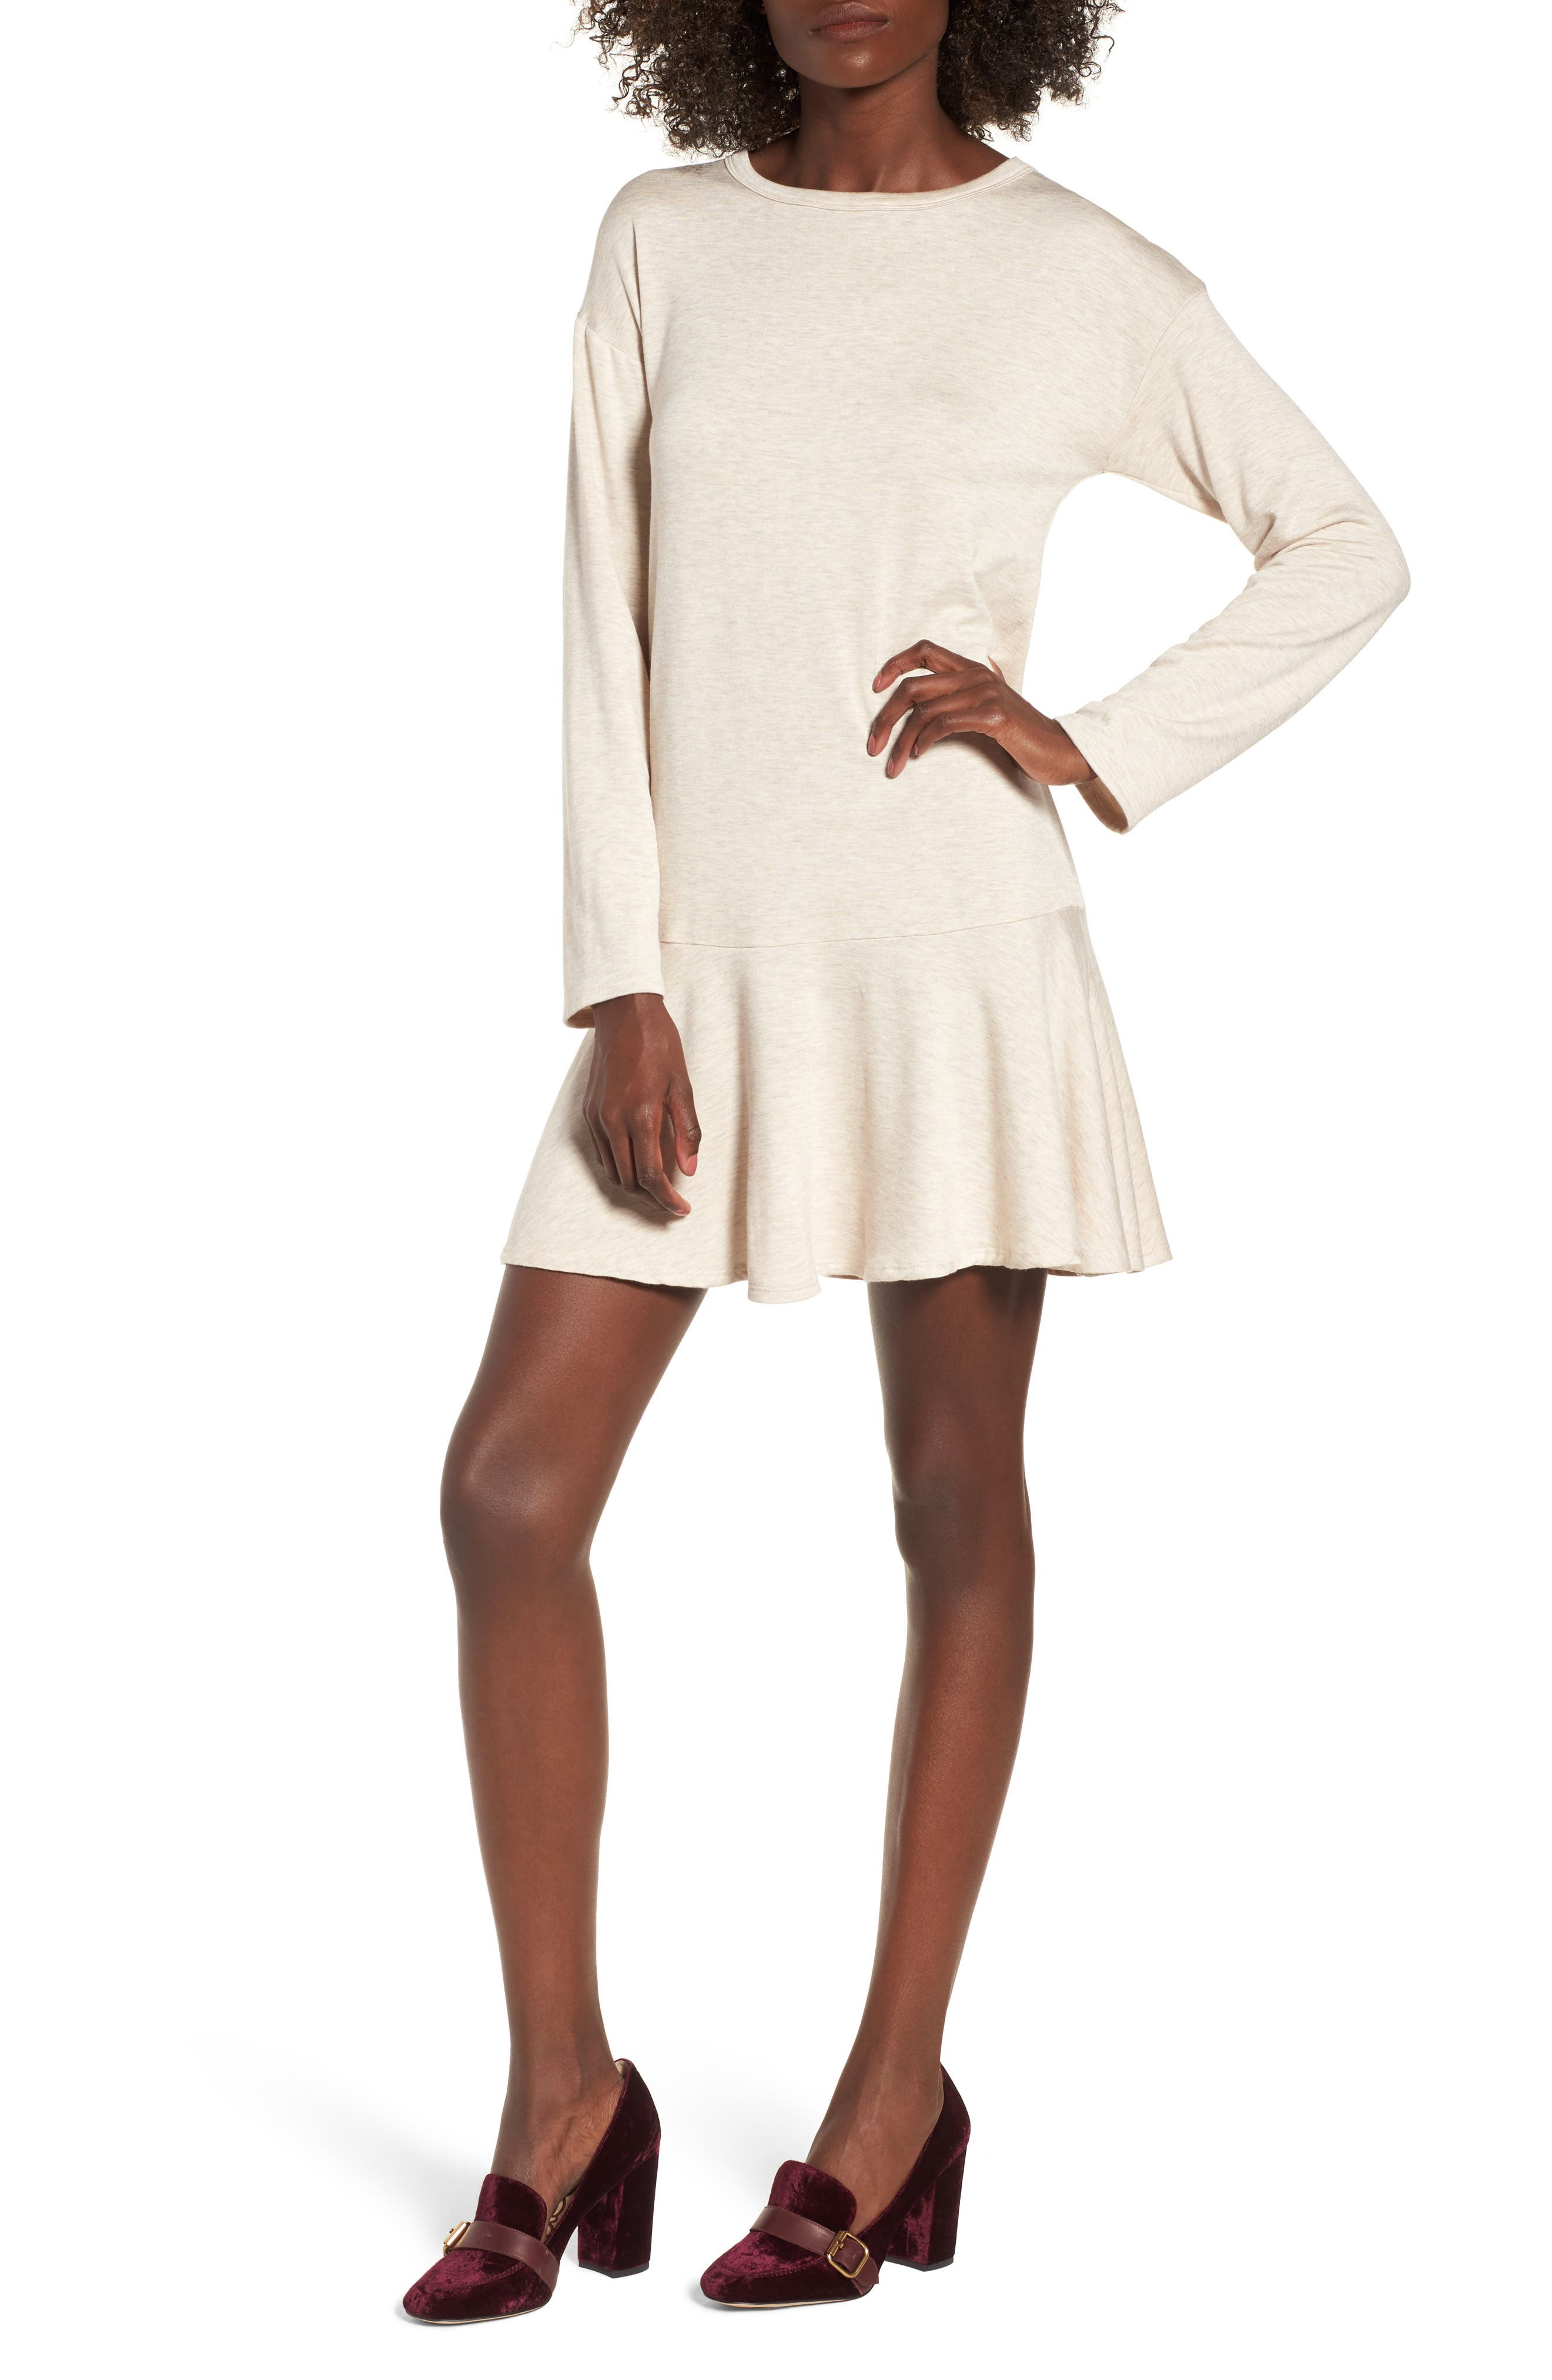 Socialite Drop Waist Sweatshirt Dress